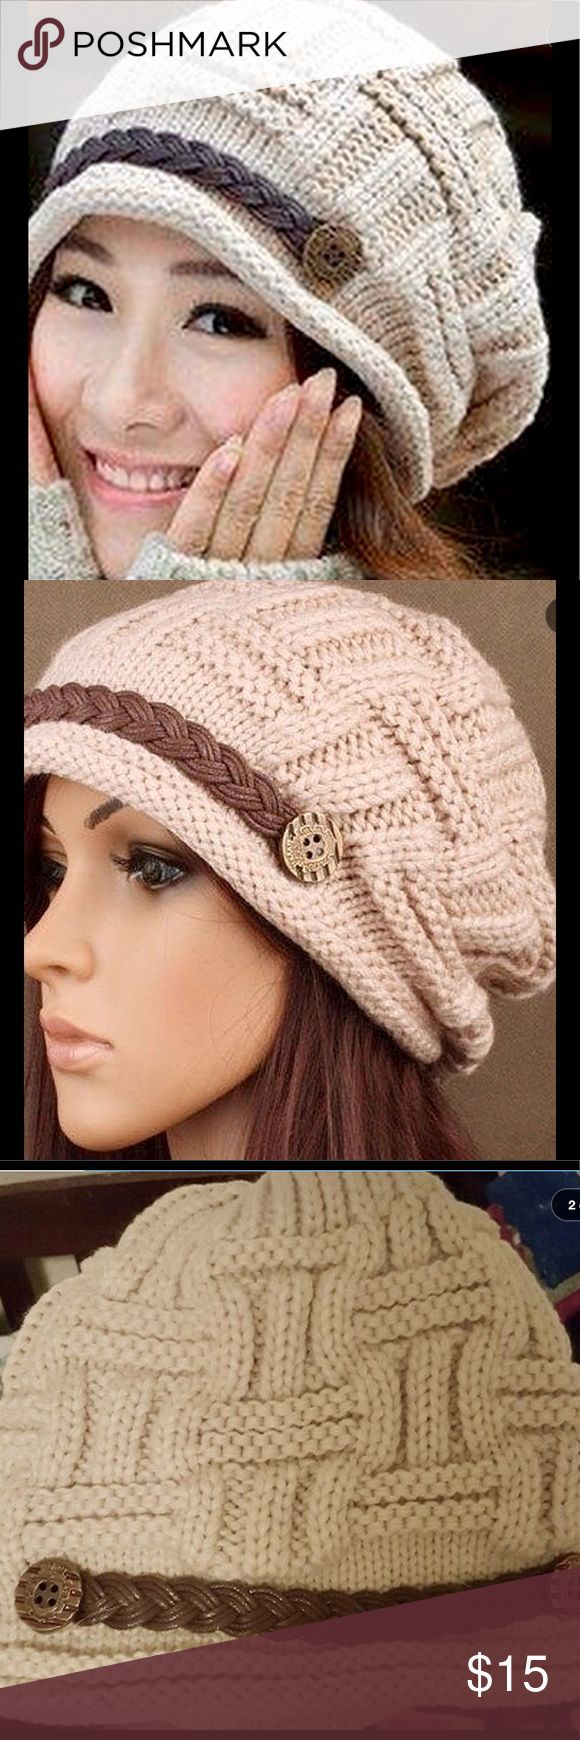 Beanie acrylic hat warm trendy women's fashion Brand new hat in sealed packaging. Material:Acrylic.   Strap Type:Flexfit Color: Beige. Smoke/animal free Accessories Hats